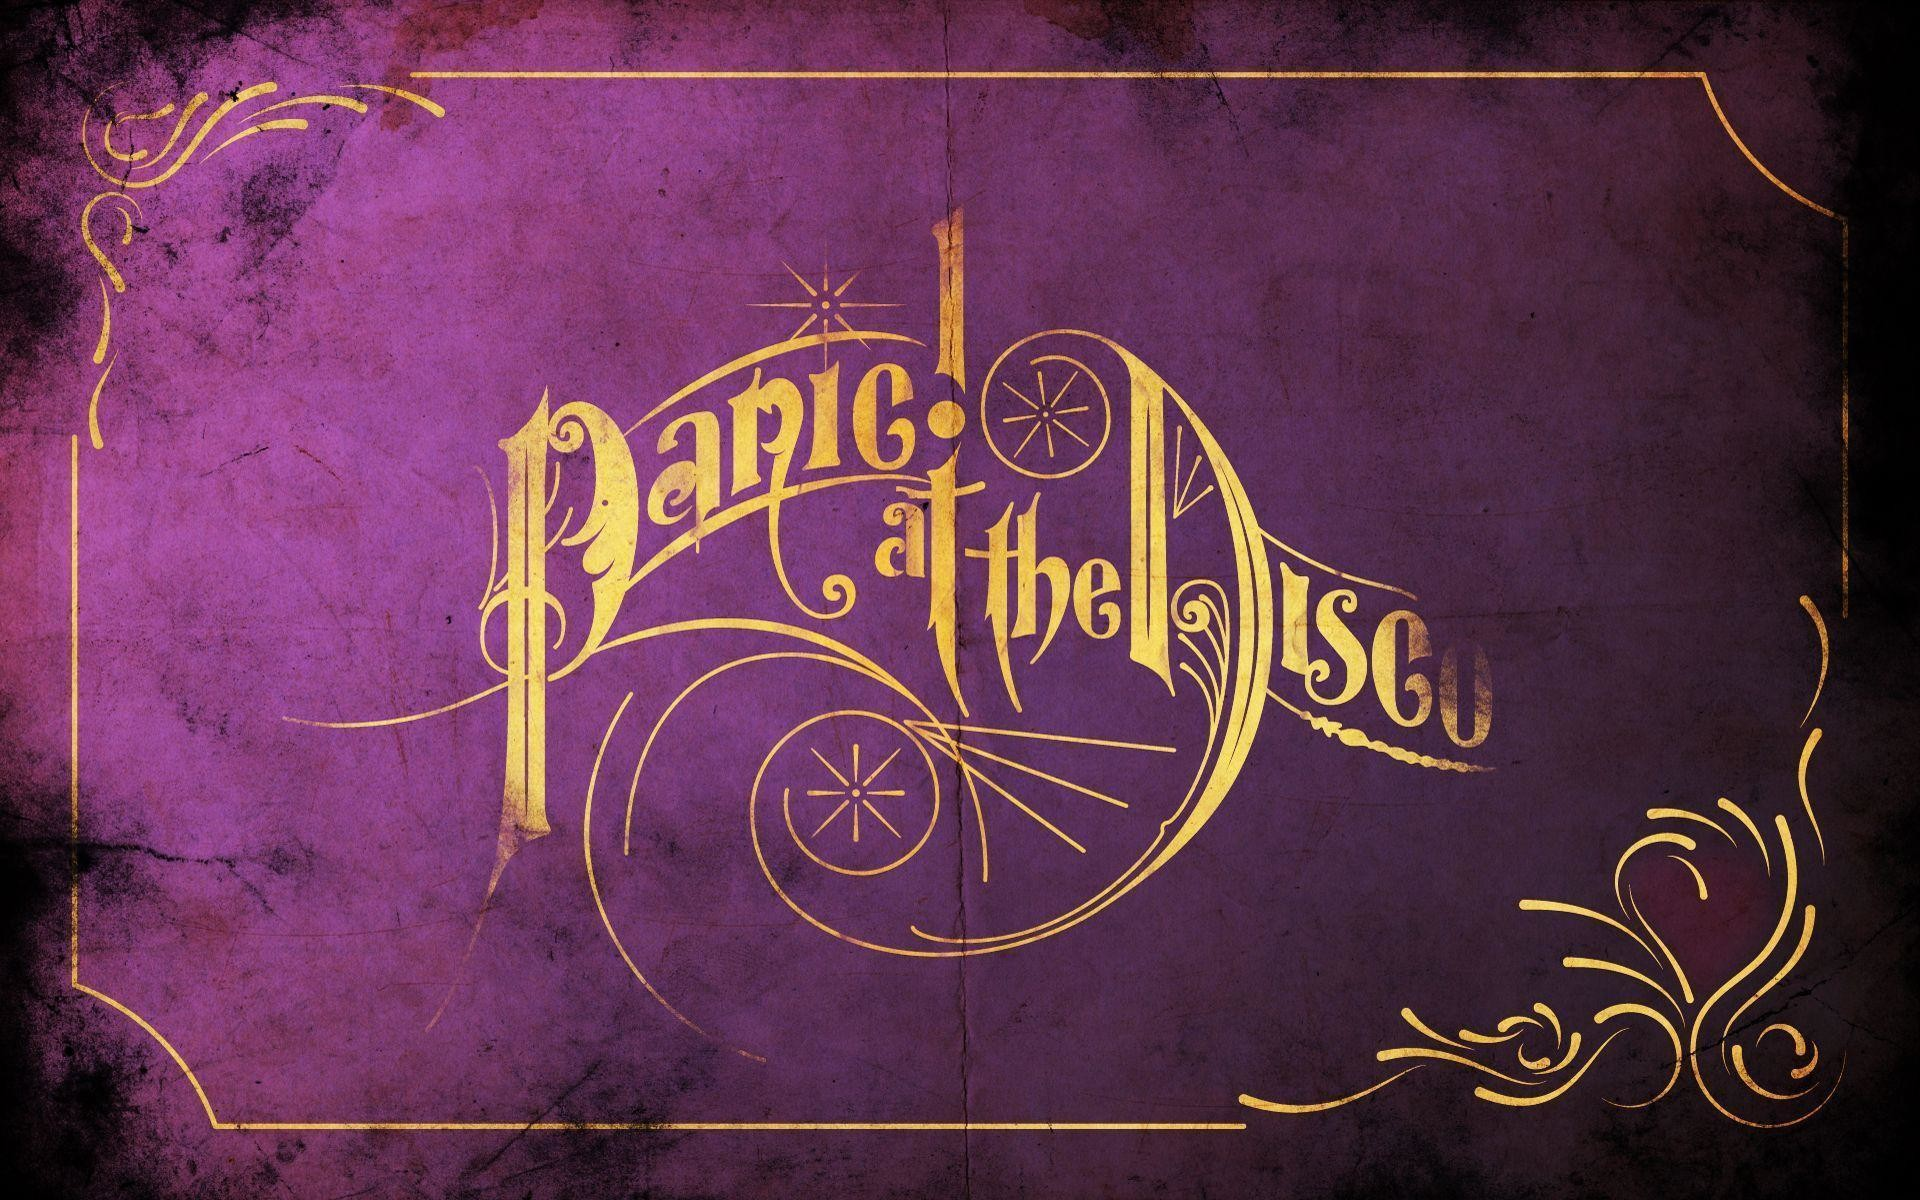 973793 panic at the disco wallpapers 1920x1200 for computer